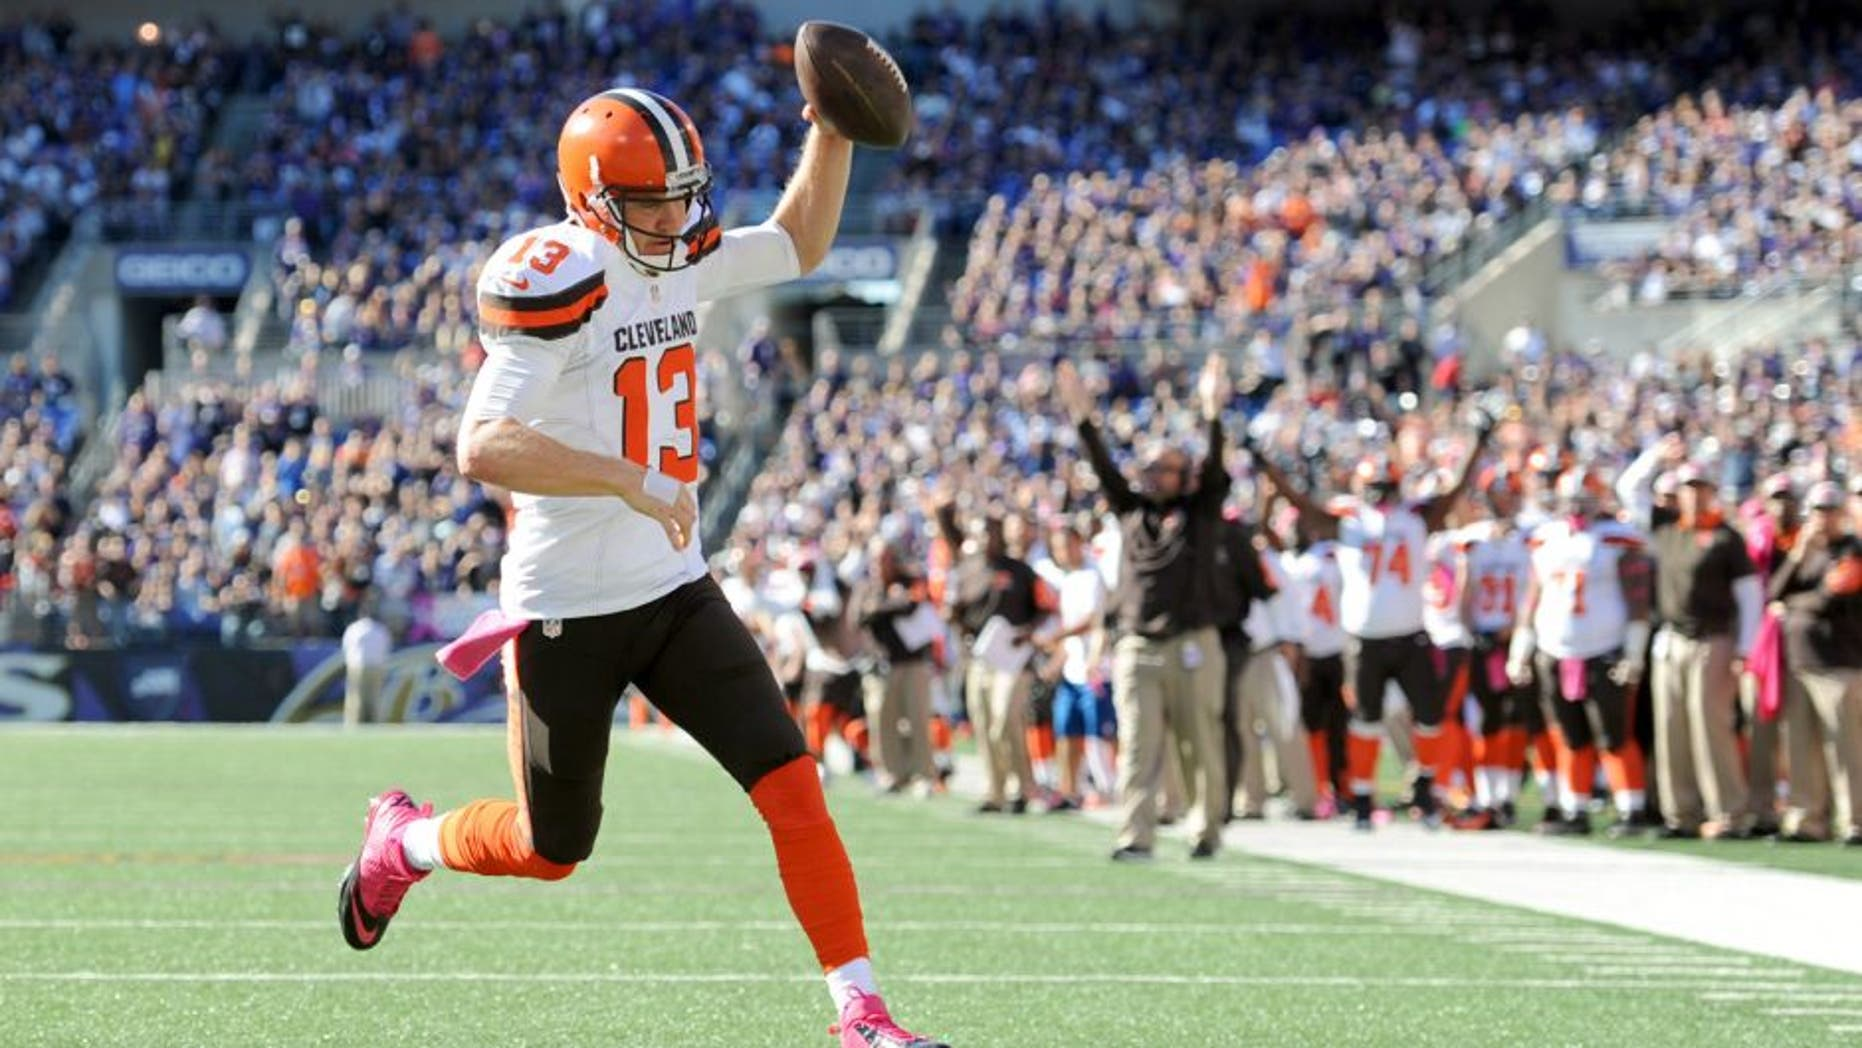 Cleveland Browns quarterback Josh McCown scores a touchdown in the second half of an NFL football gameagainst the Baltimore Ravens, Sunday, Oct. 11, 2015, in Baltimore. (AP Photo/Gail Burton)